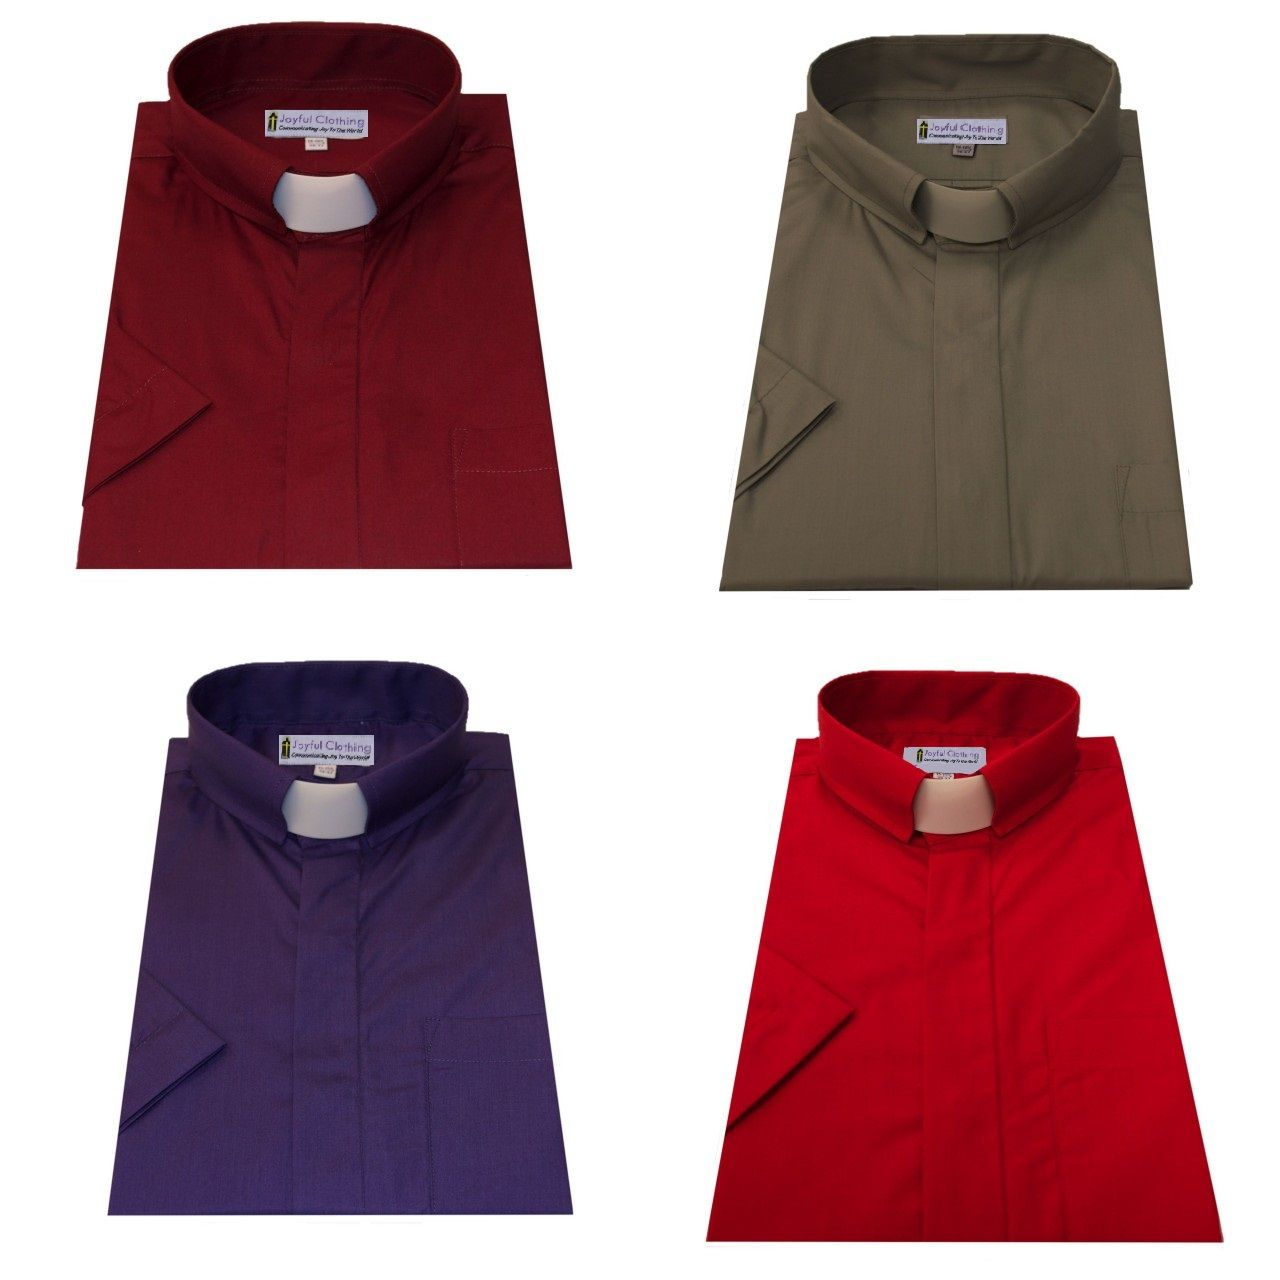 *Pack of 4* Women's Short-Sleeve Tab-Collar Clergy Shirts